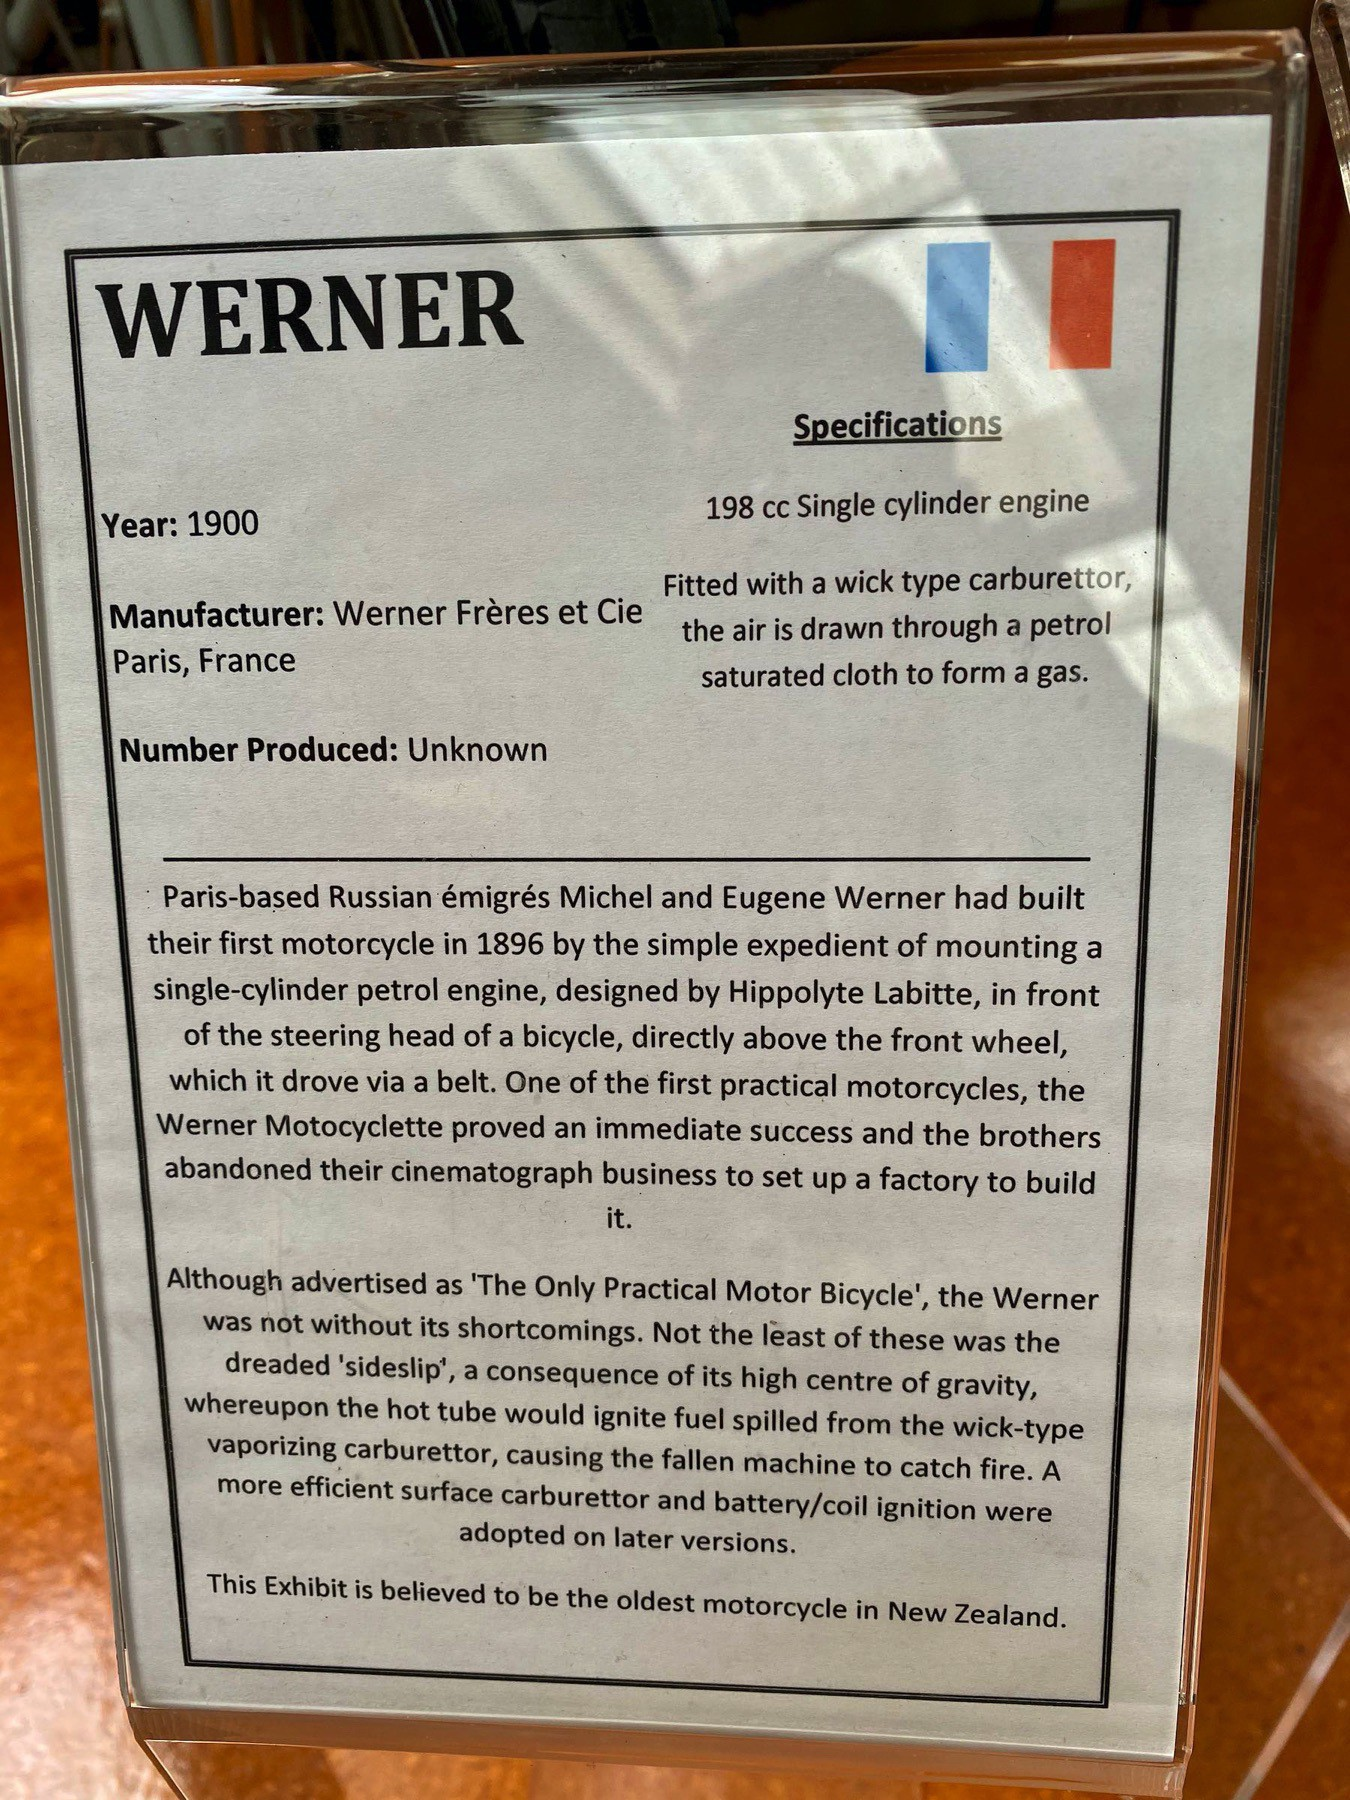 Werner motorbike from 1900 info card.